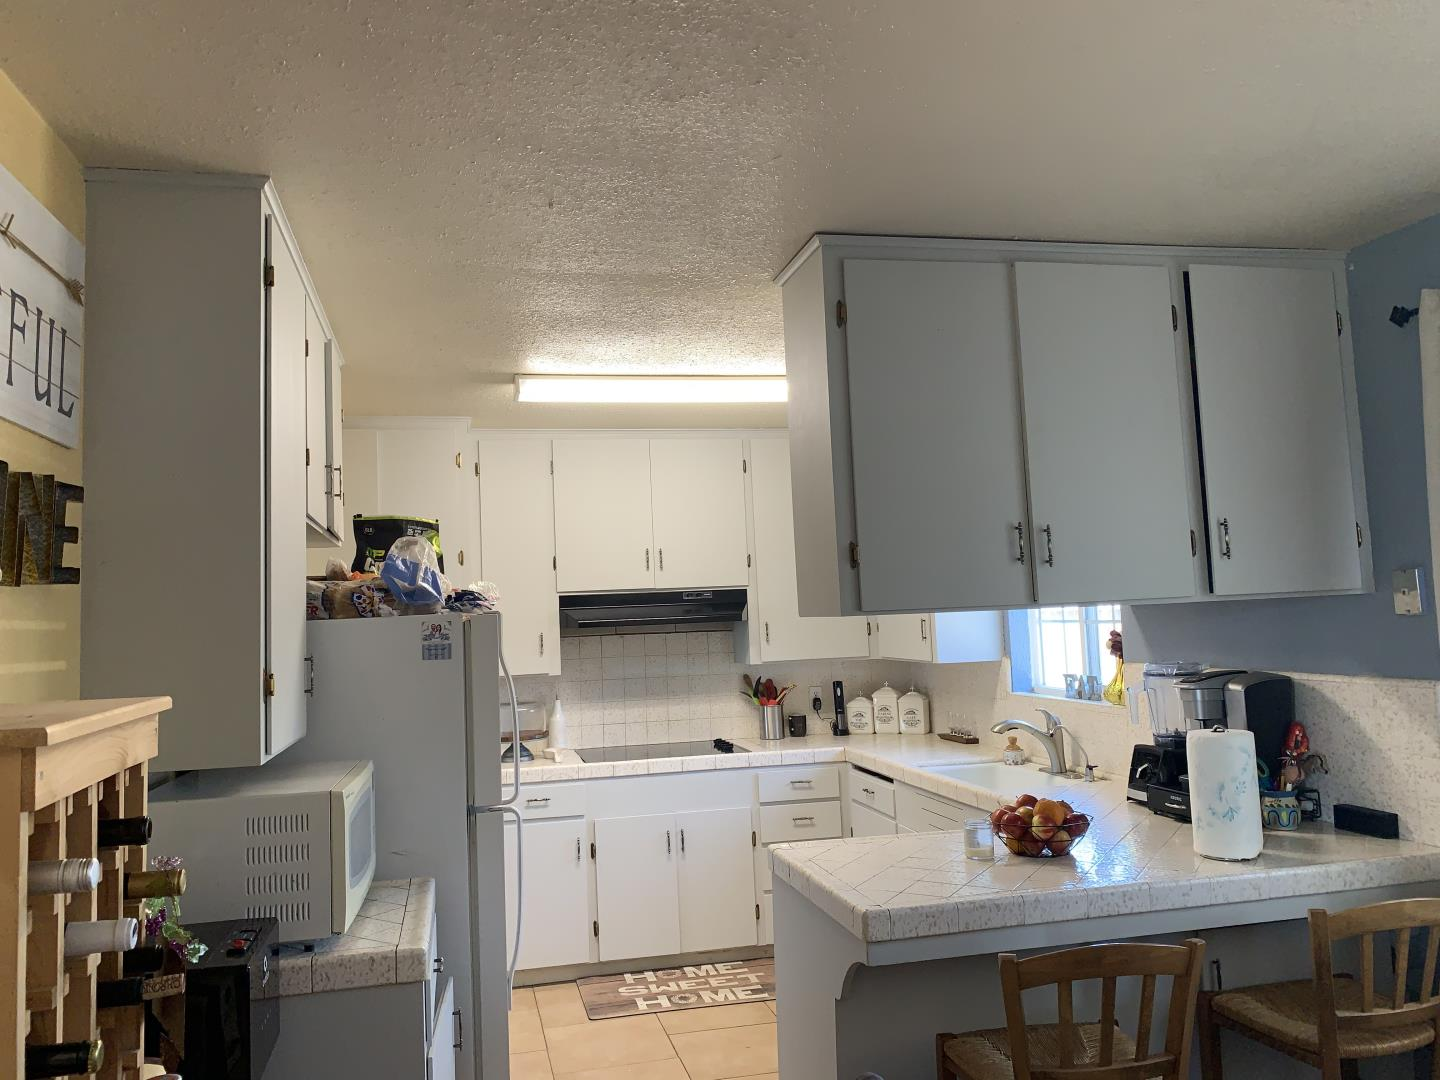 41725 Walnut AVE, GREENFIELD, California 93927, 4 Bedrooms Bedrooms, ,2 BathroomsBathrooms,Residential,For Sale,41725 Walnut AVE,ML81685203